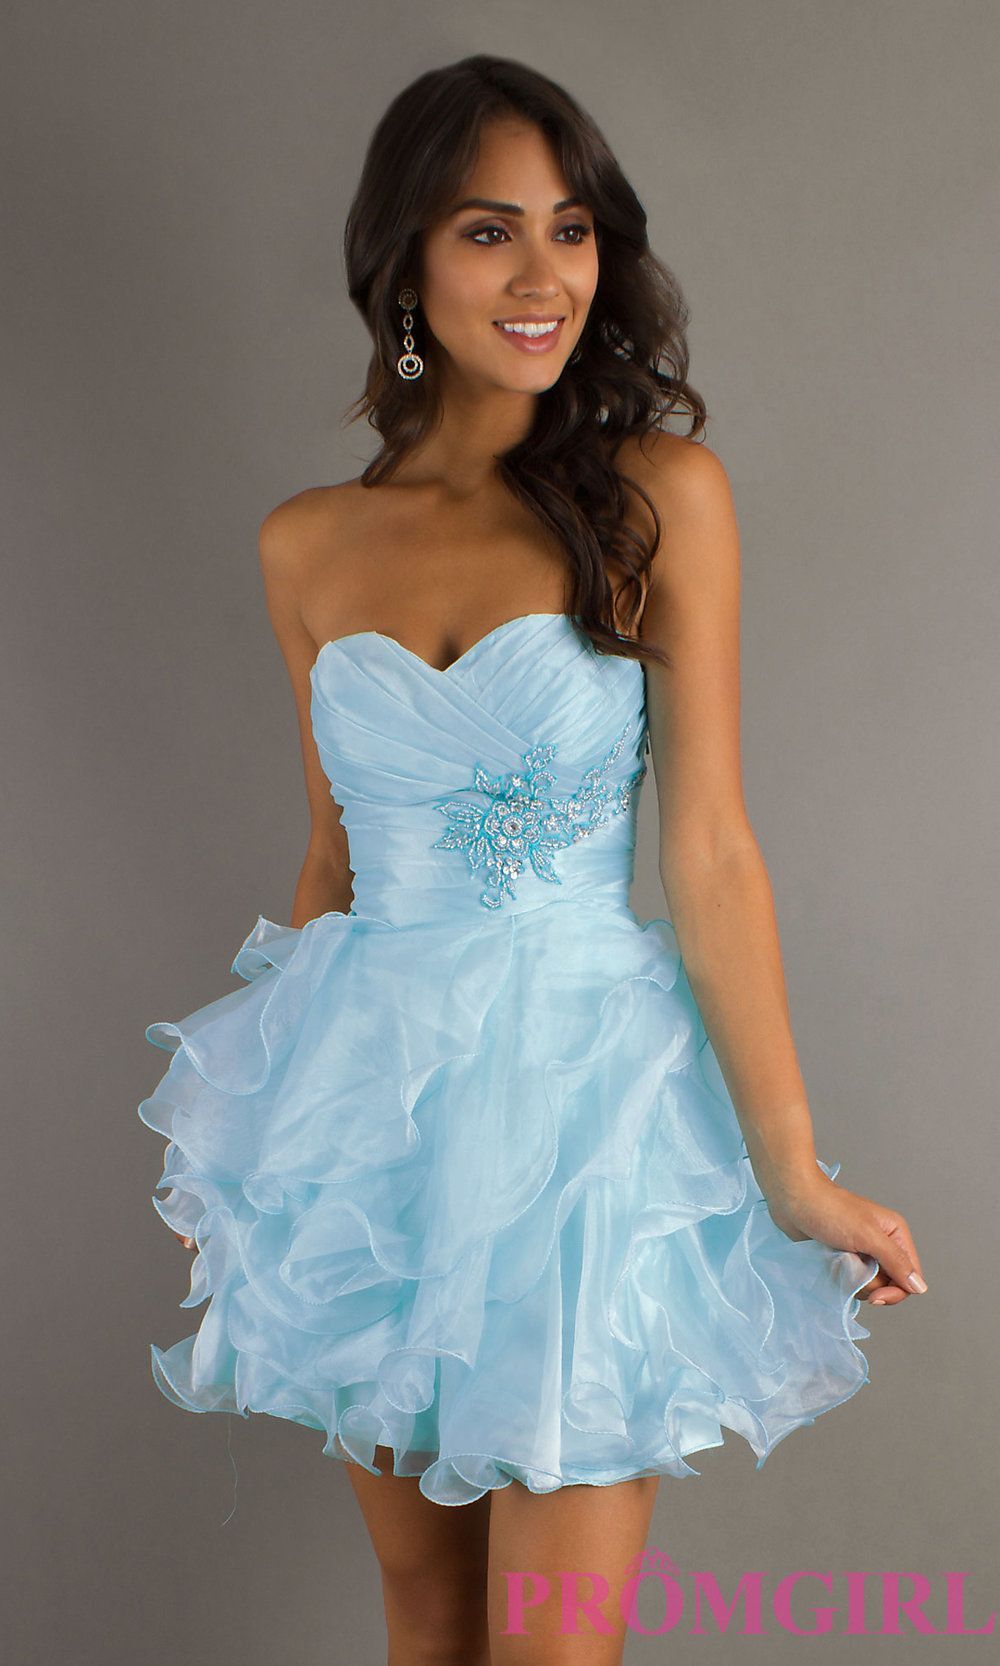 Short Prom Dress Front Image | Homecoming | Pinterest | Pink party ...